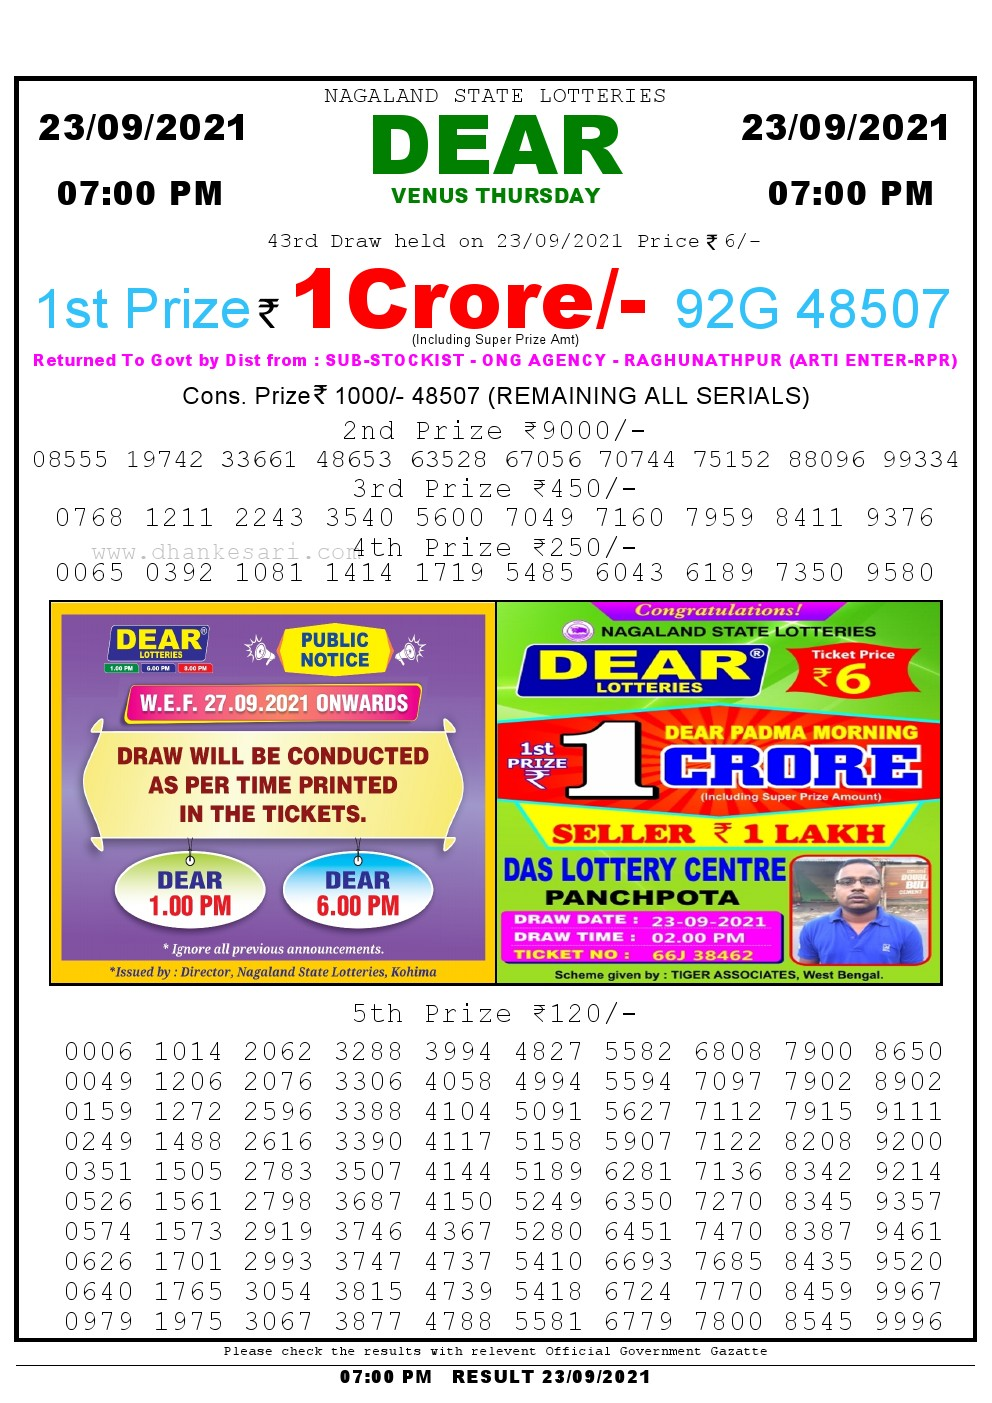 Dear Lottery Result TodAay 7pm 23/09/2021 Nagaland State lottery result pdf